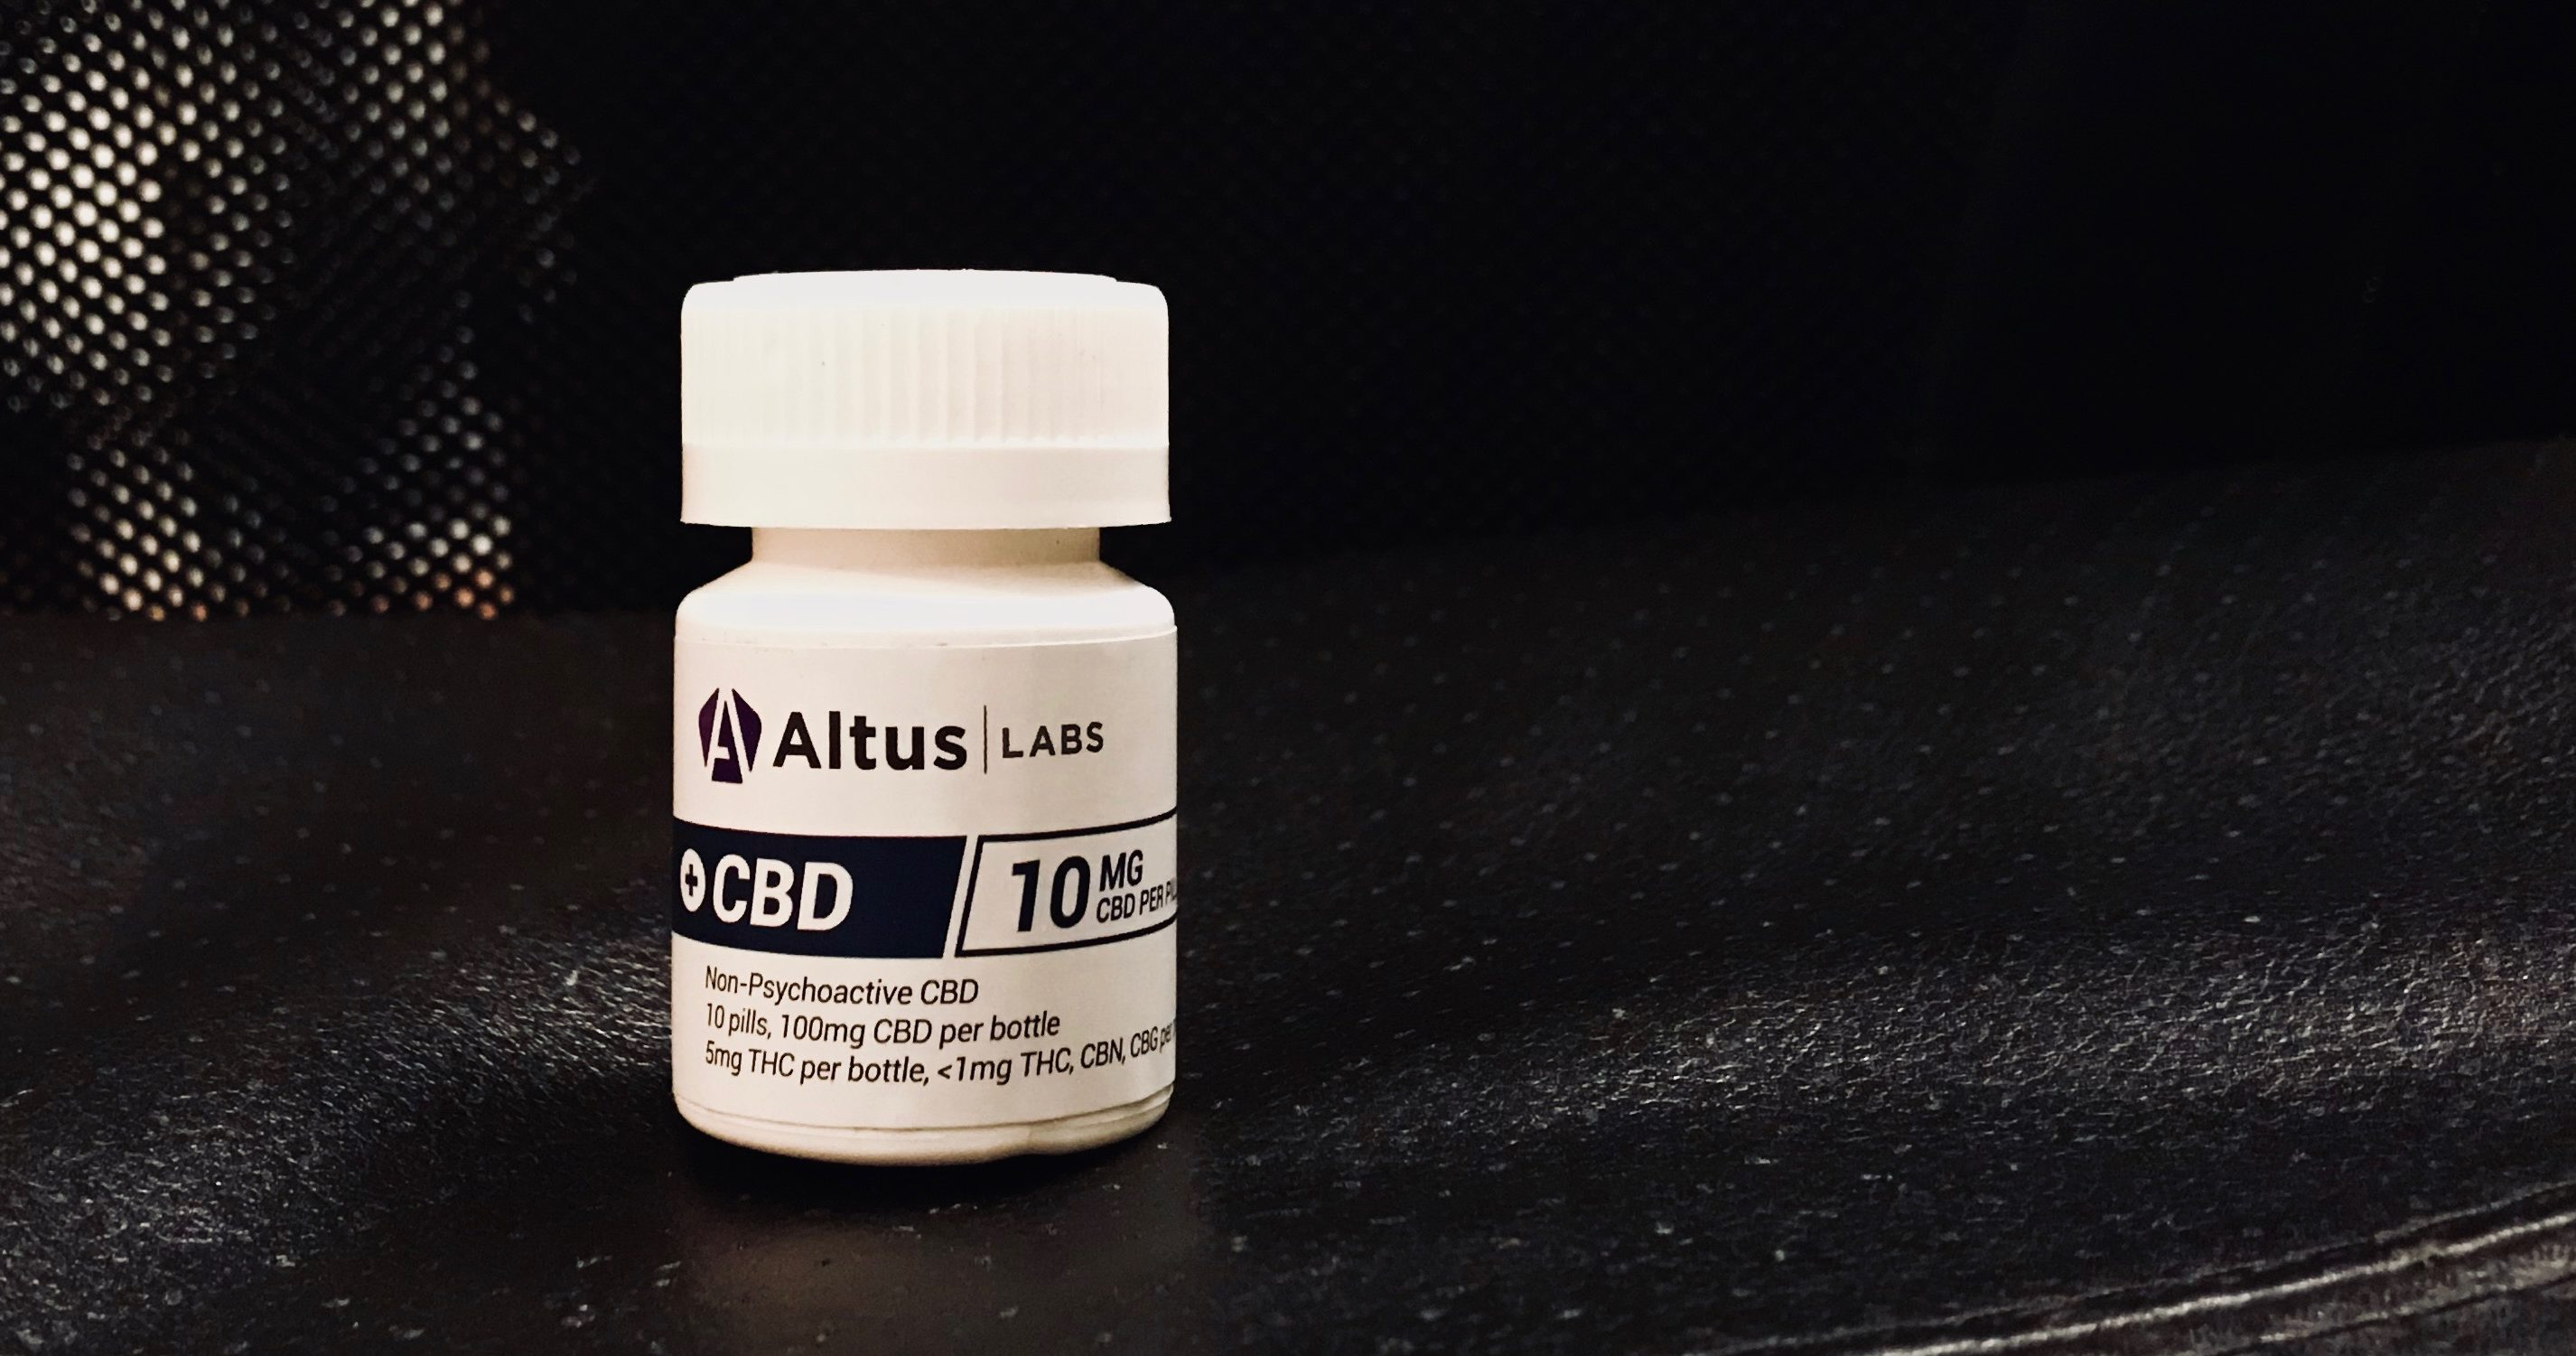 Altus Labs CBD Featured Image